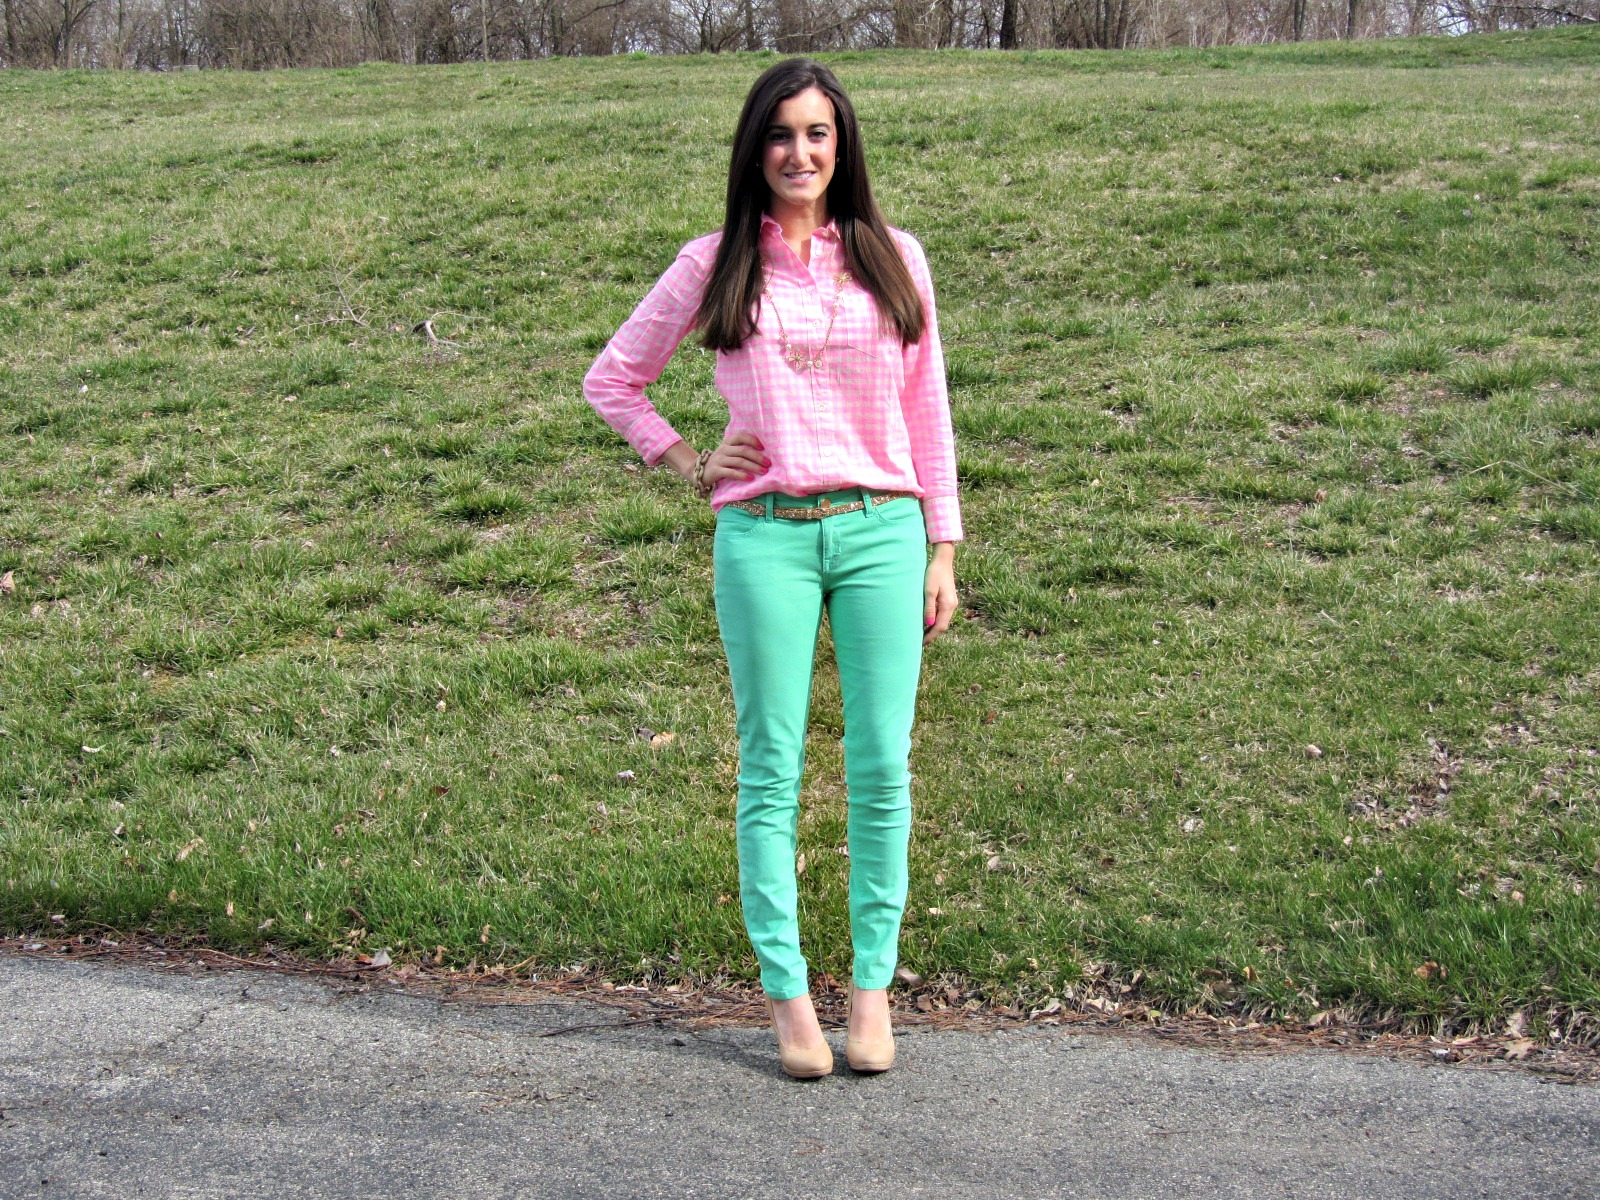 J.Crew Pink Gingham Shirt, Forever 21 Mint Pants